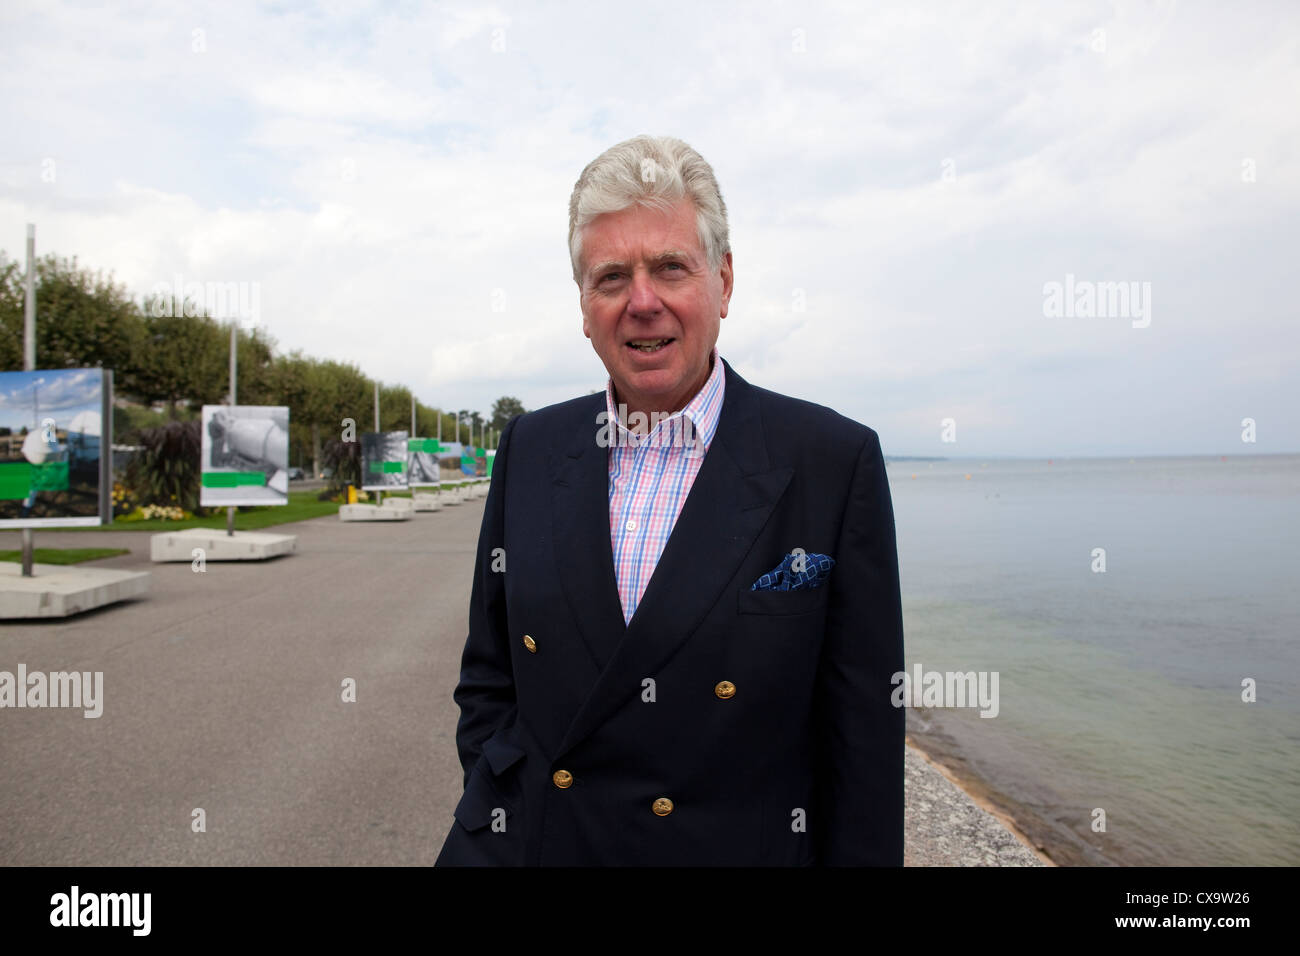 Michael Cole Director at Fulham FC taking a stroll along the edge of Lake Geneva, Switzerland - Stock Image